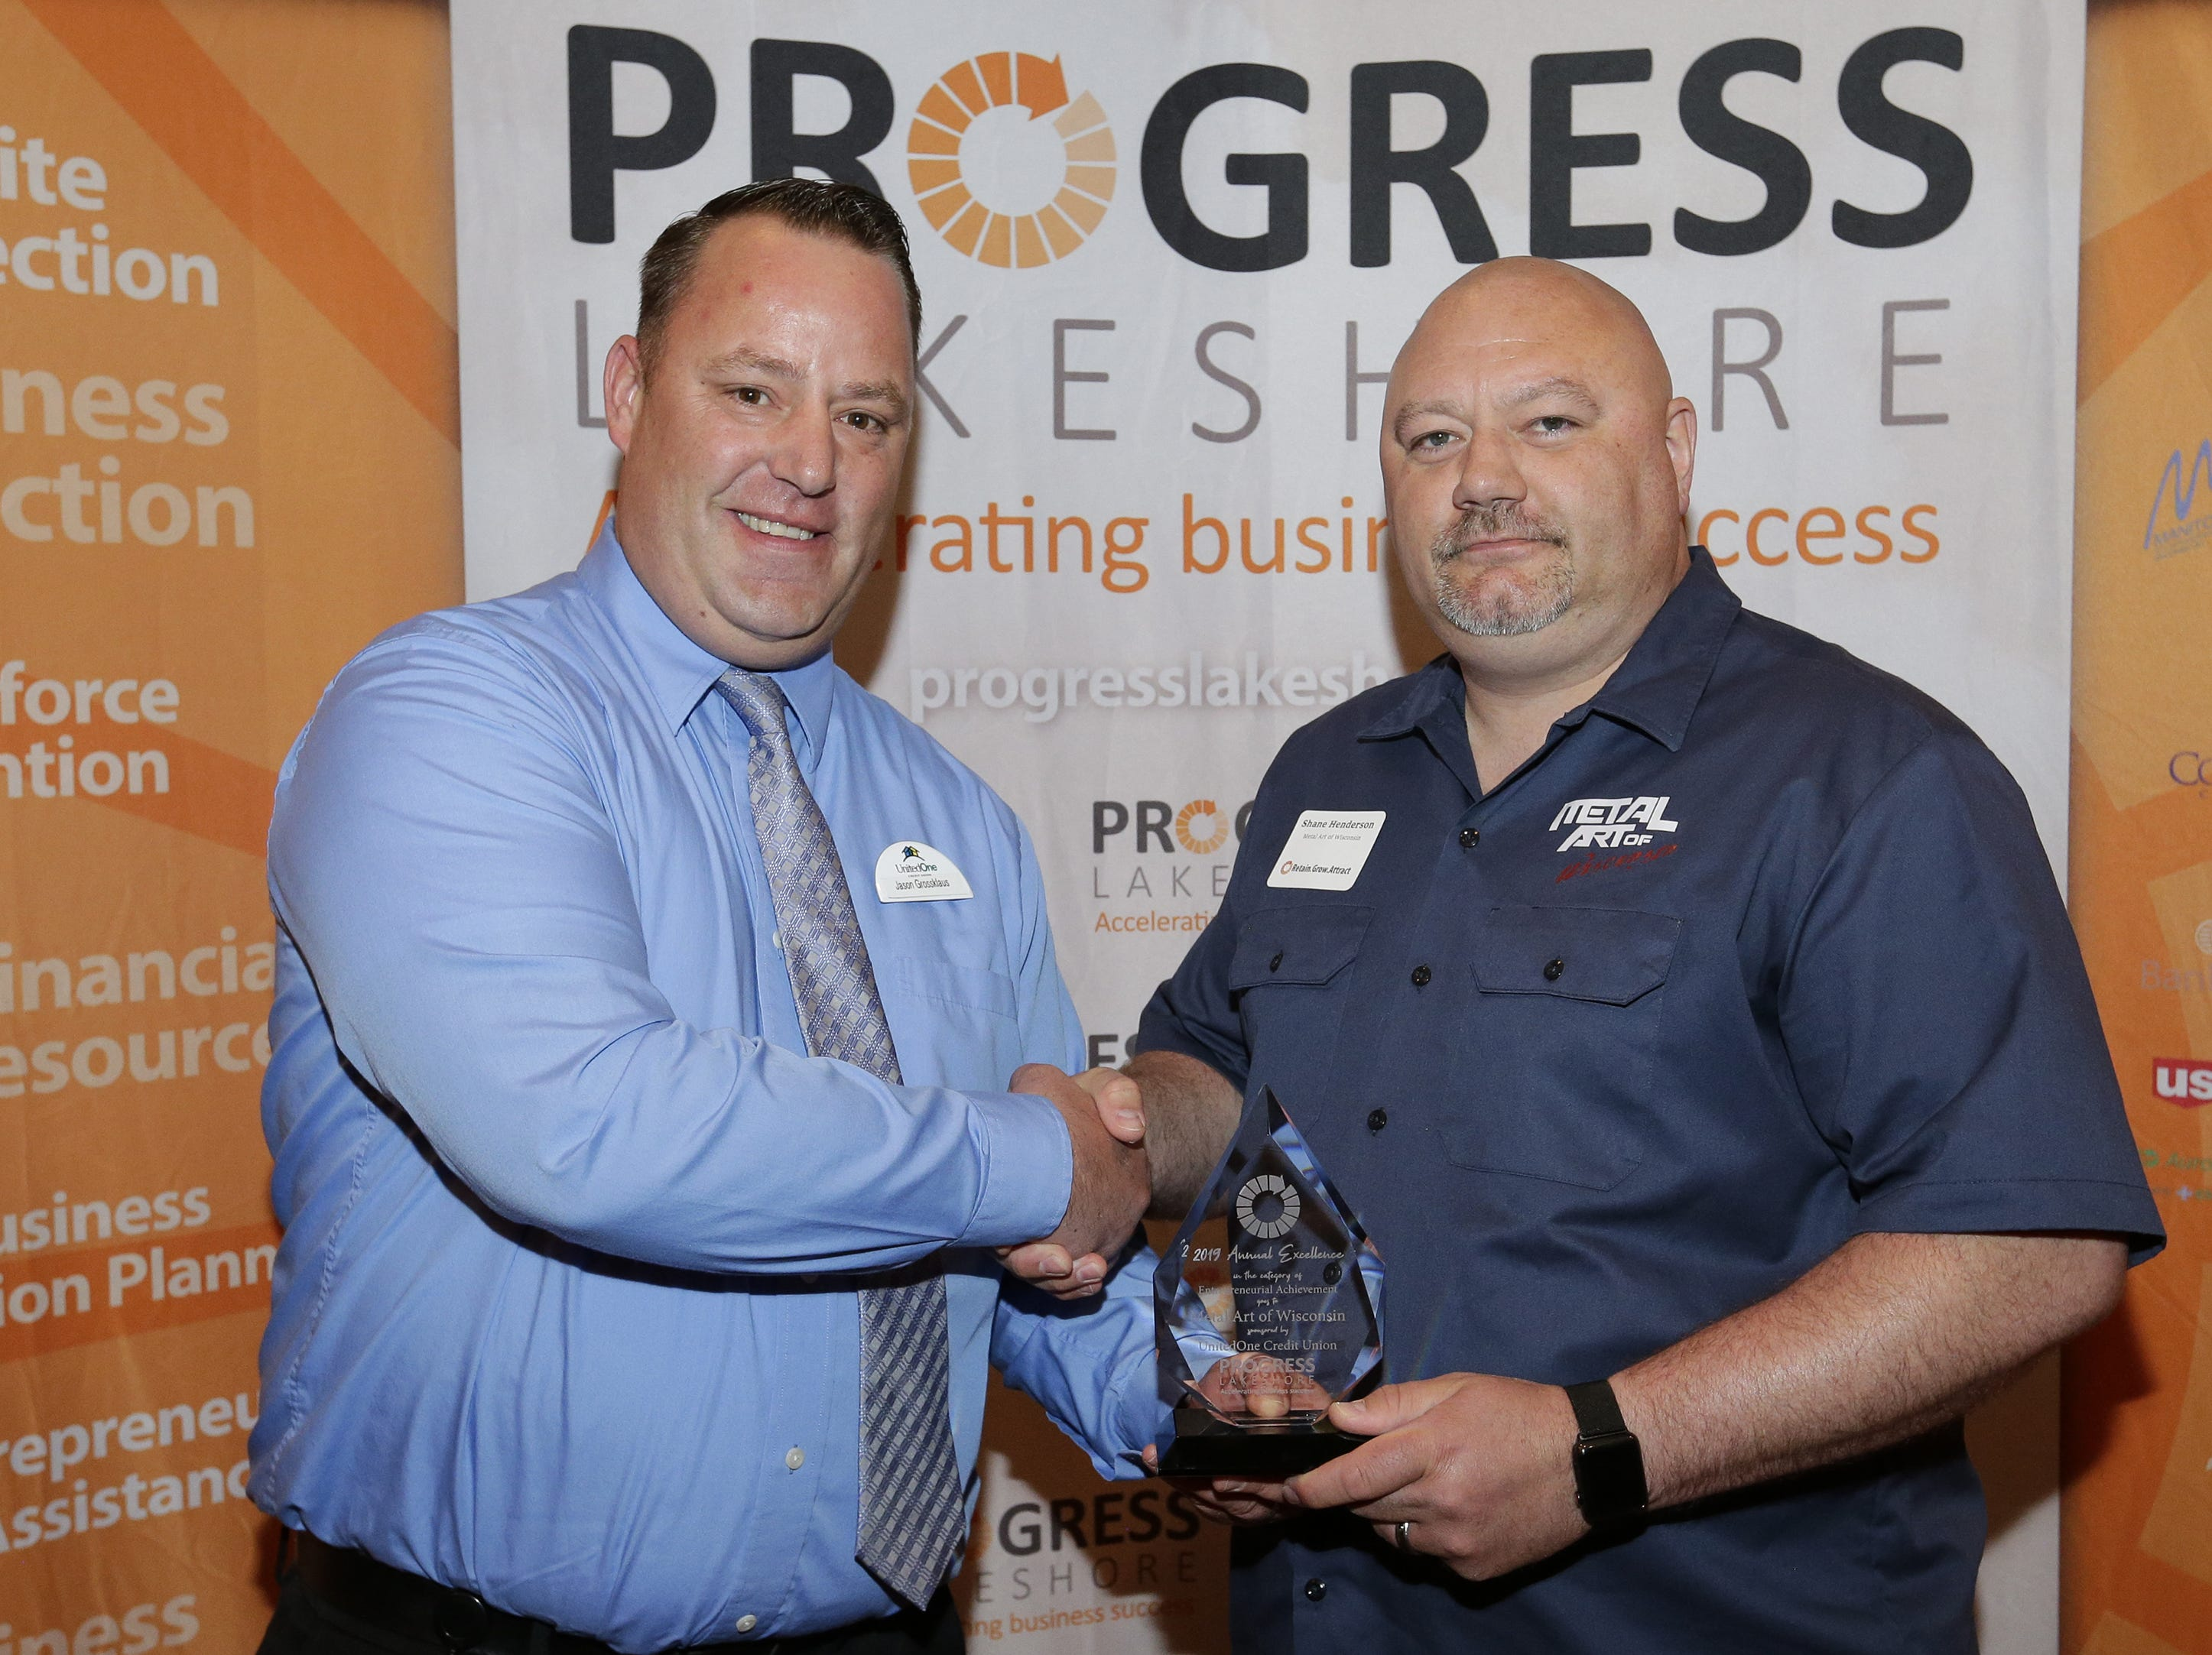 Sponsor Jason Grossklaus presents the Entrepreneurial Achievement Award to Metal Art of Wisconsin's Shane Henderson during the Progress Lakeshore Awards Breakfast at the Holiday Inn Tuesday, May 14, 2019, in Manitowoc.